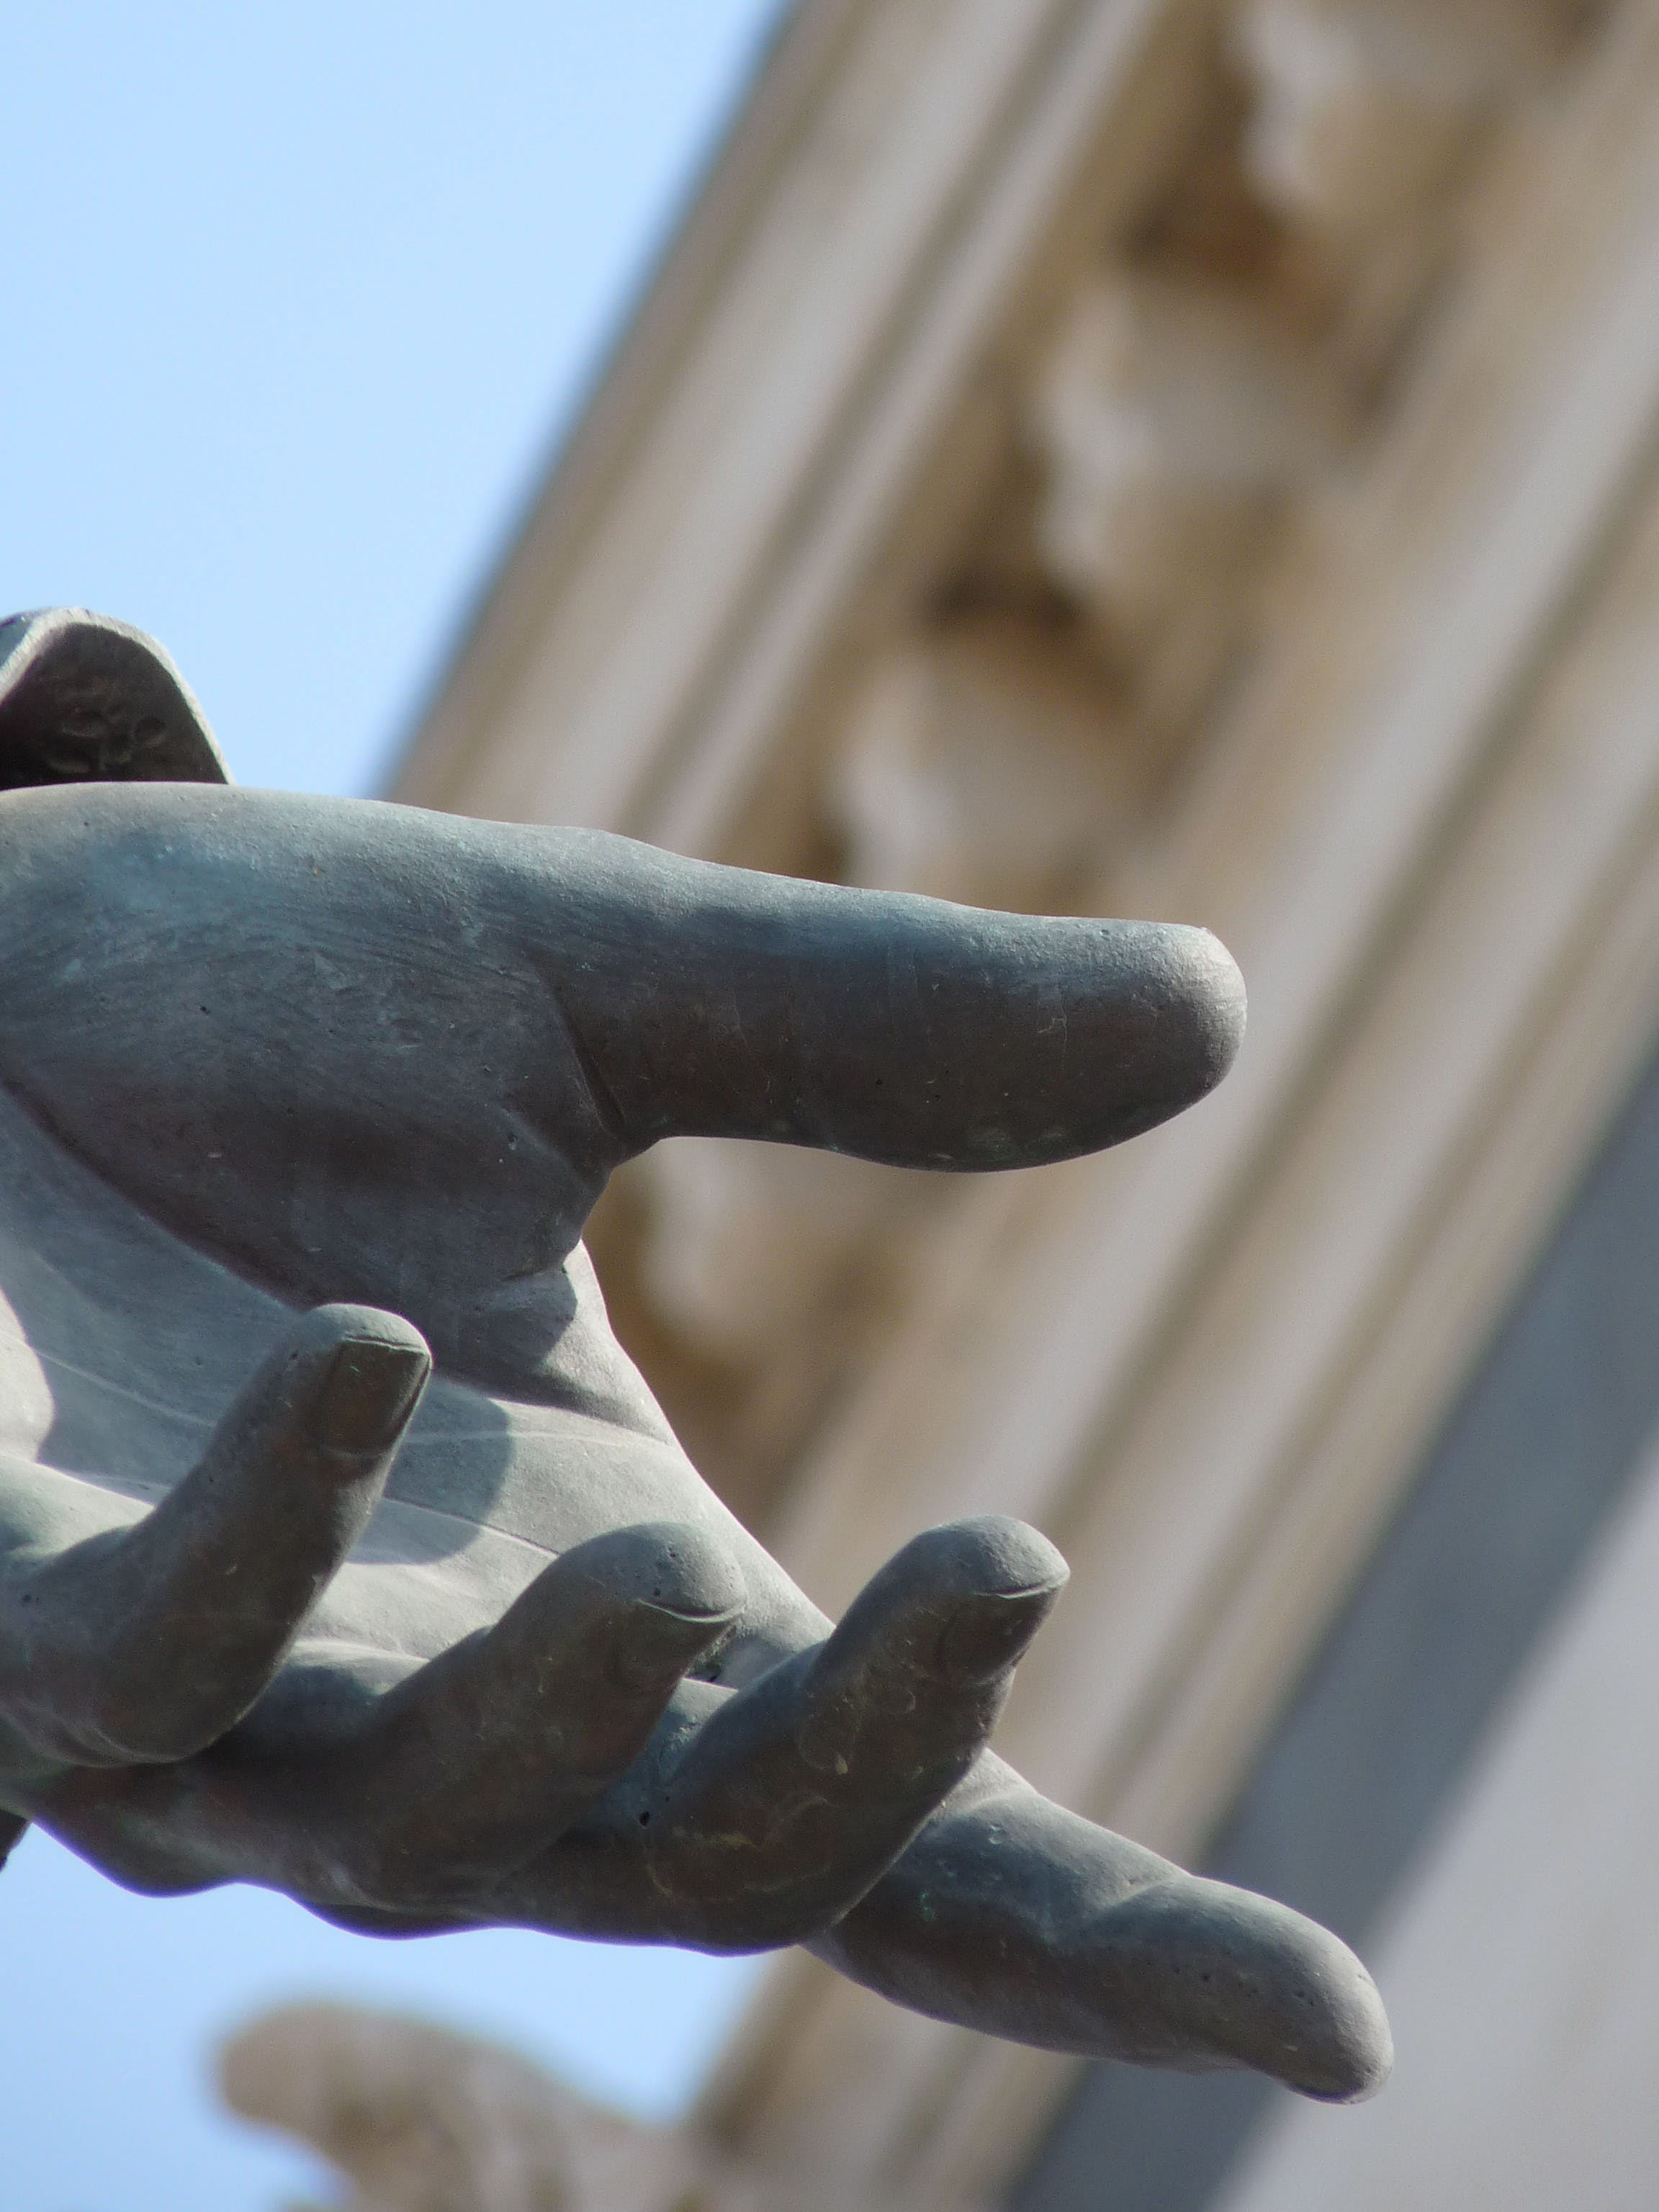 Free stock photo of bronze, royalty free, marseille, statue hand